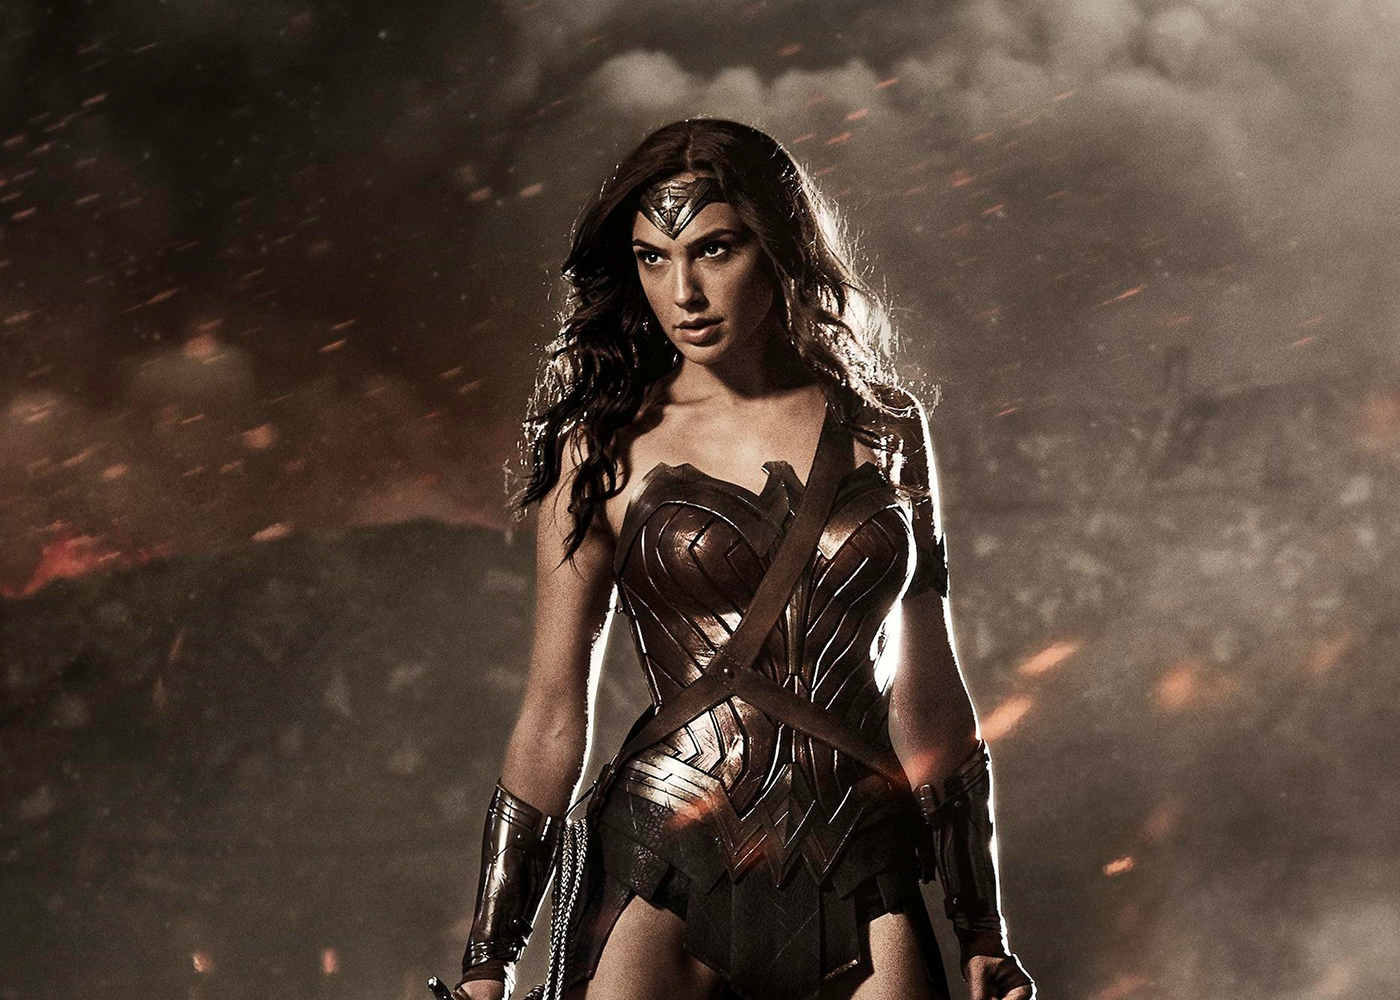 Box Office: Wonder Woman Wins Her Second Weekend at Number One